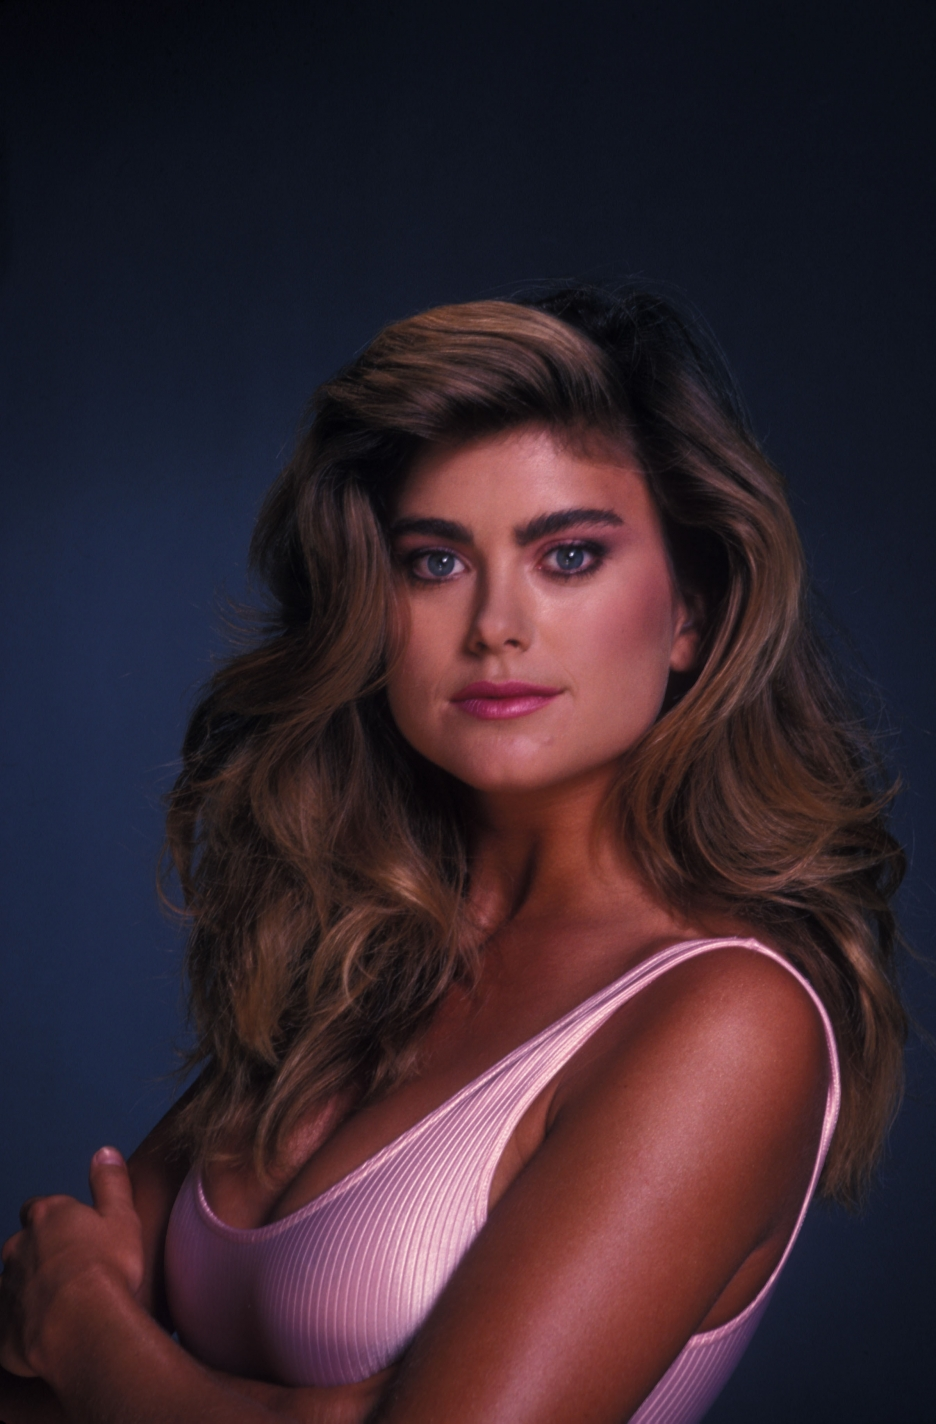 Kathy ireland and other models nude